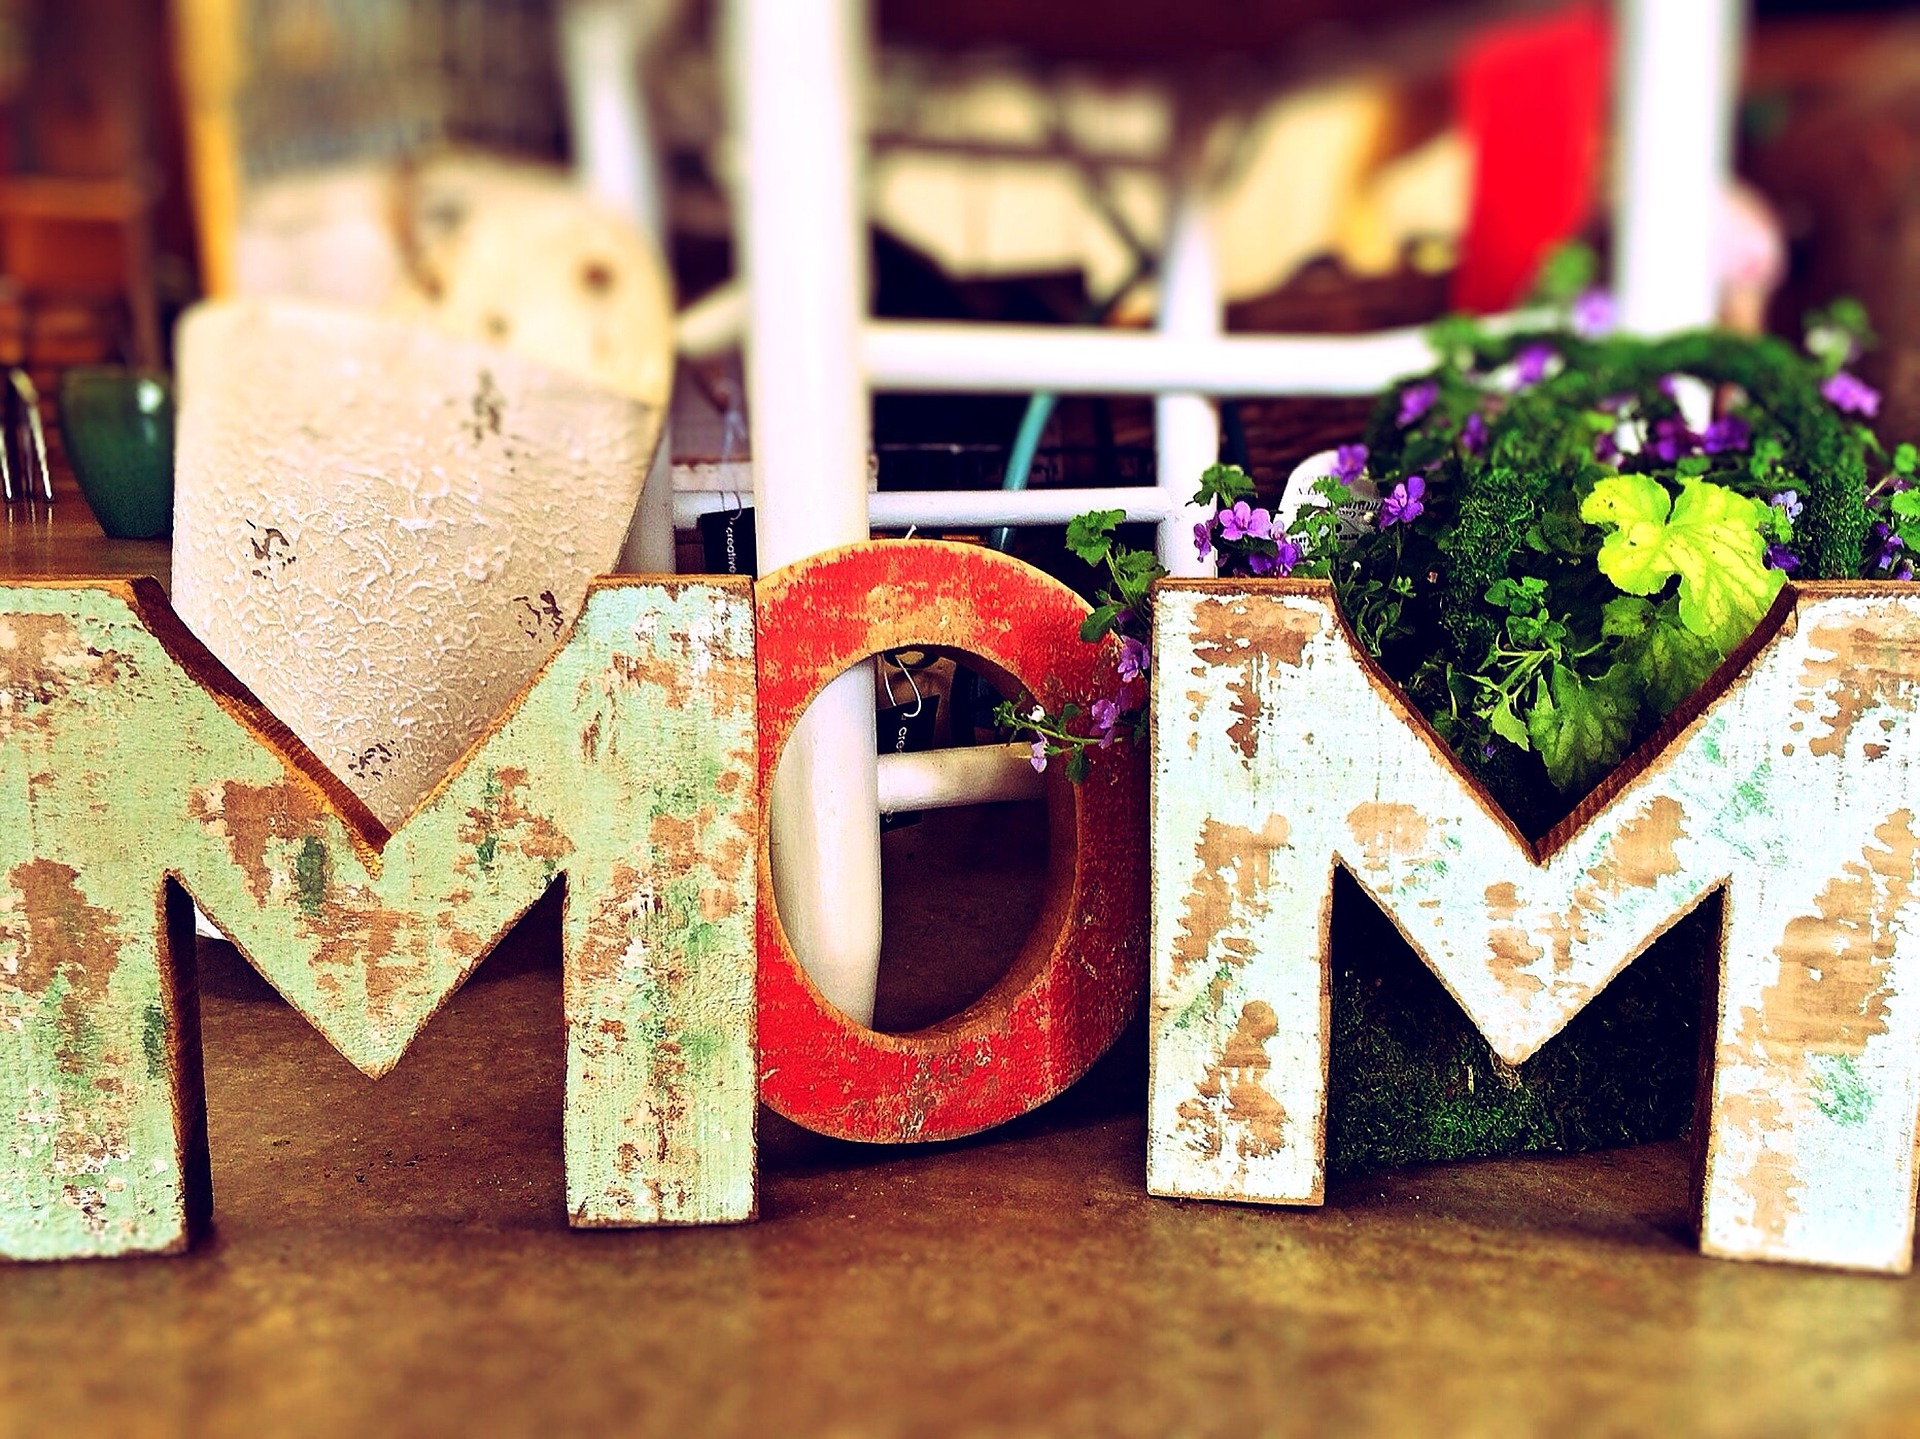 8 Mother's Day Gift Ideas That Are Sure to Make Mom Smile